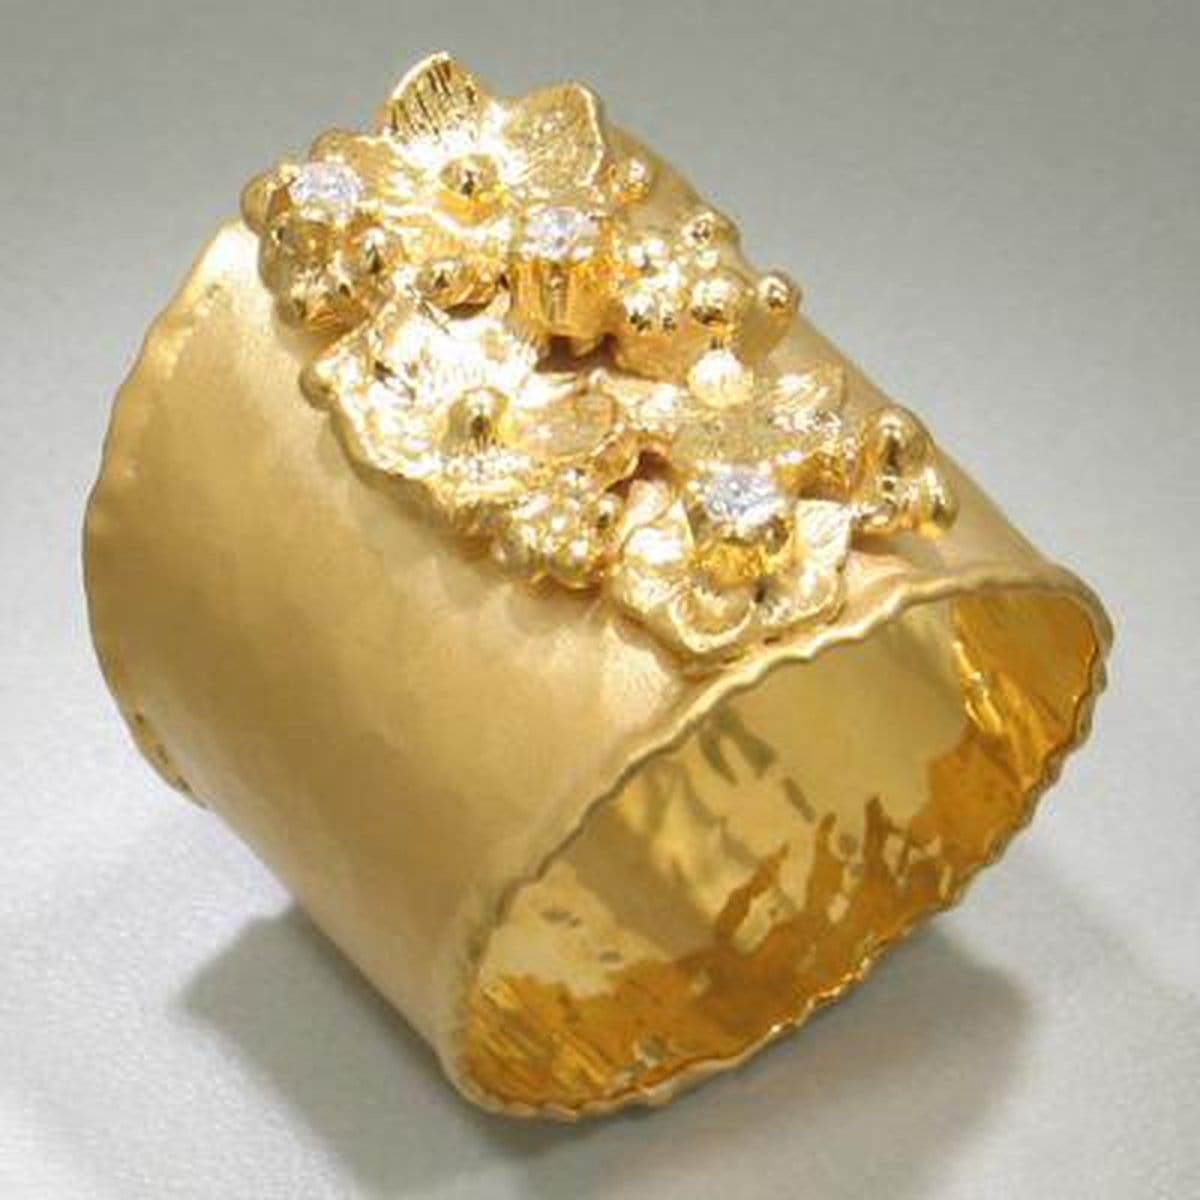 Marika Diamond & 14k Gold Ring - M1874-Marika-Renee Taylor Gallery